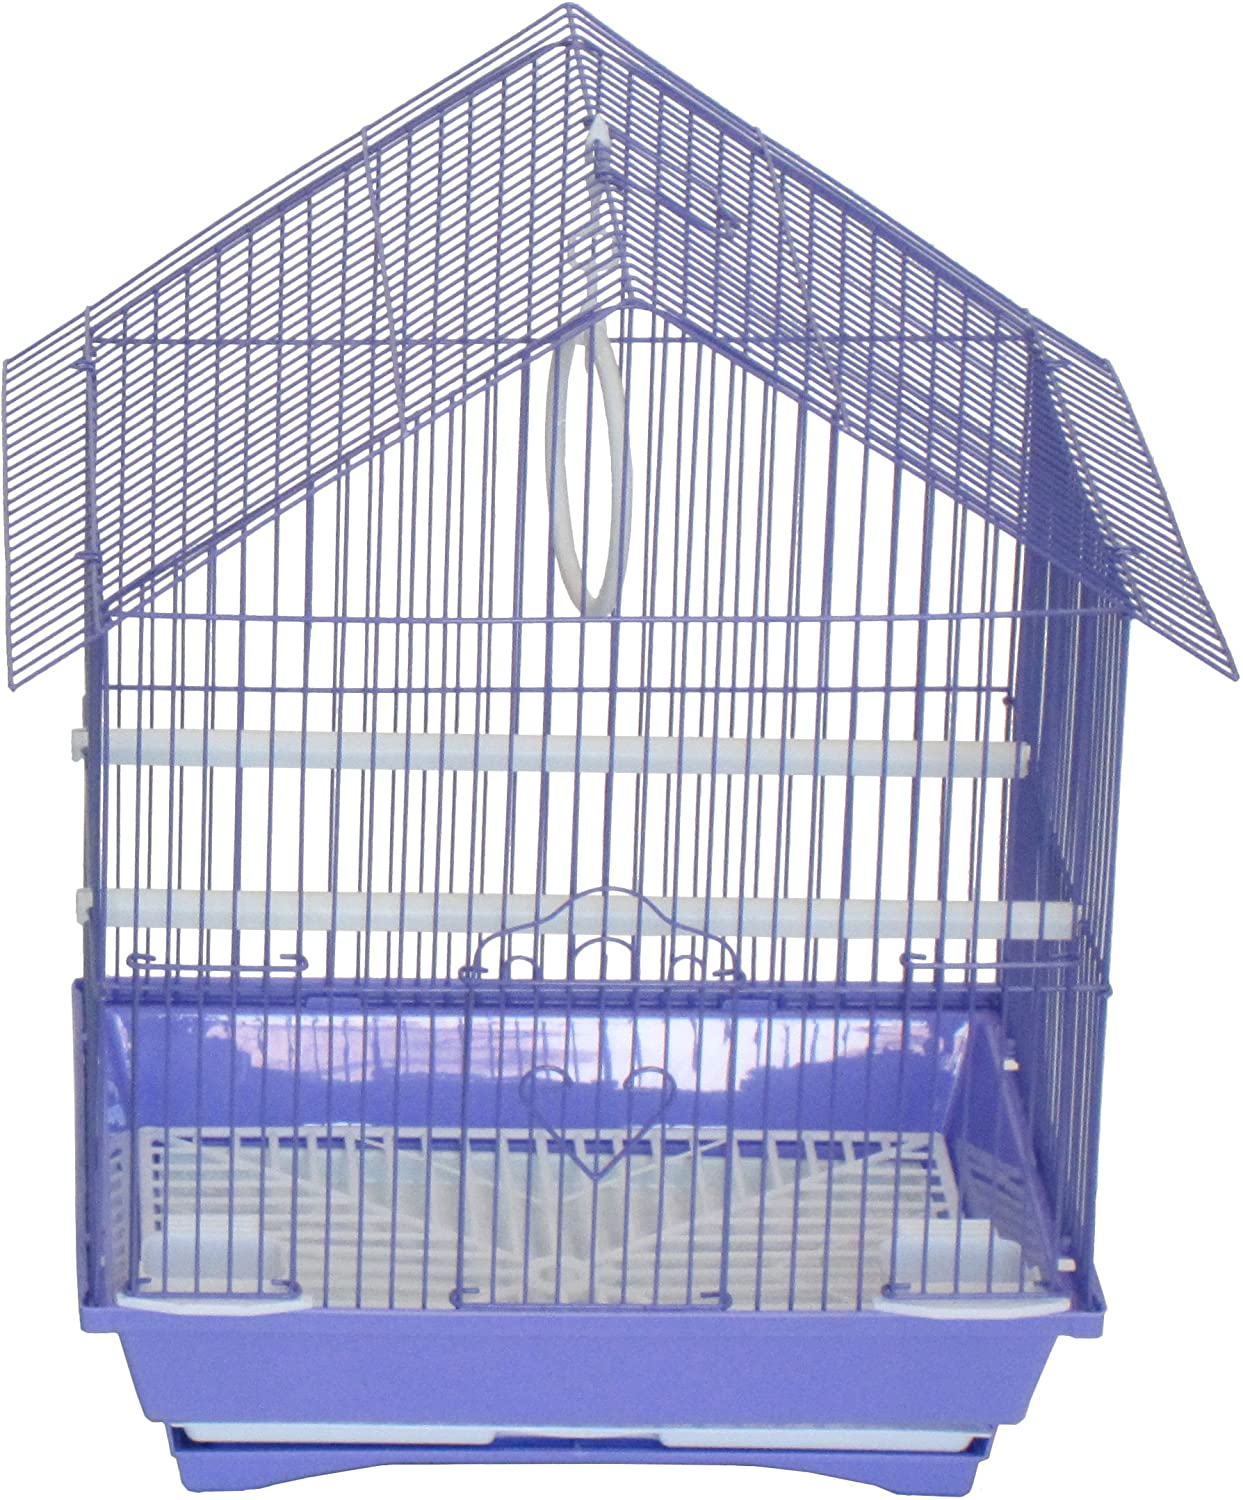 YML A1314MPUR House Top Style Small Parakeet Cage 13.3Lx10.8Wx17.8H-Inch